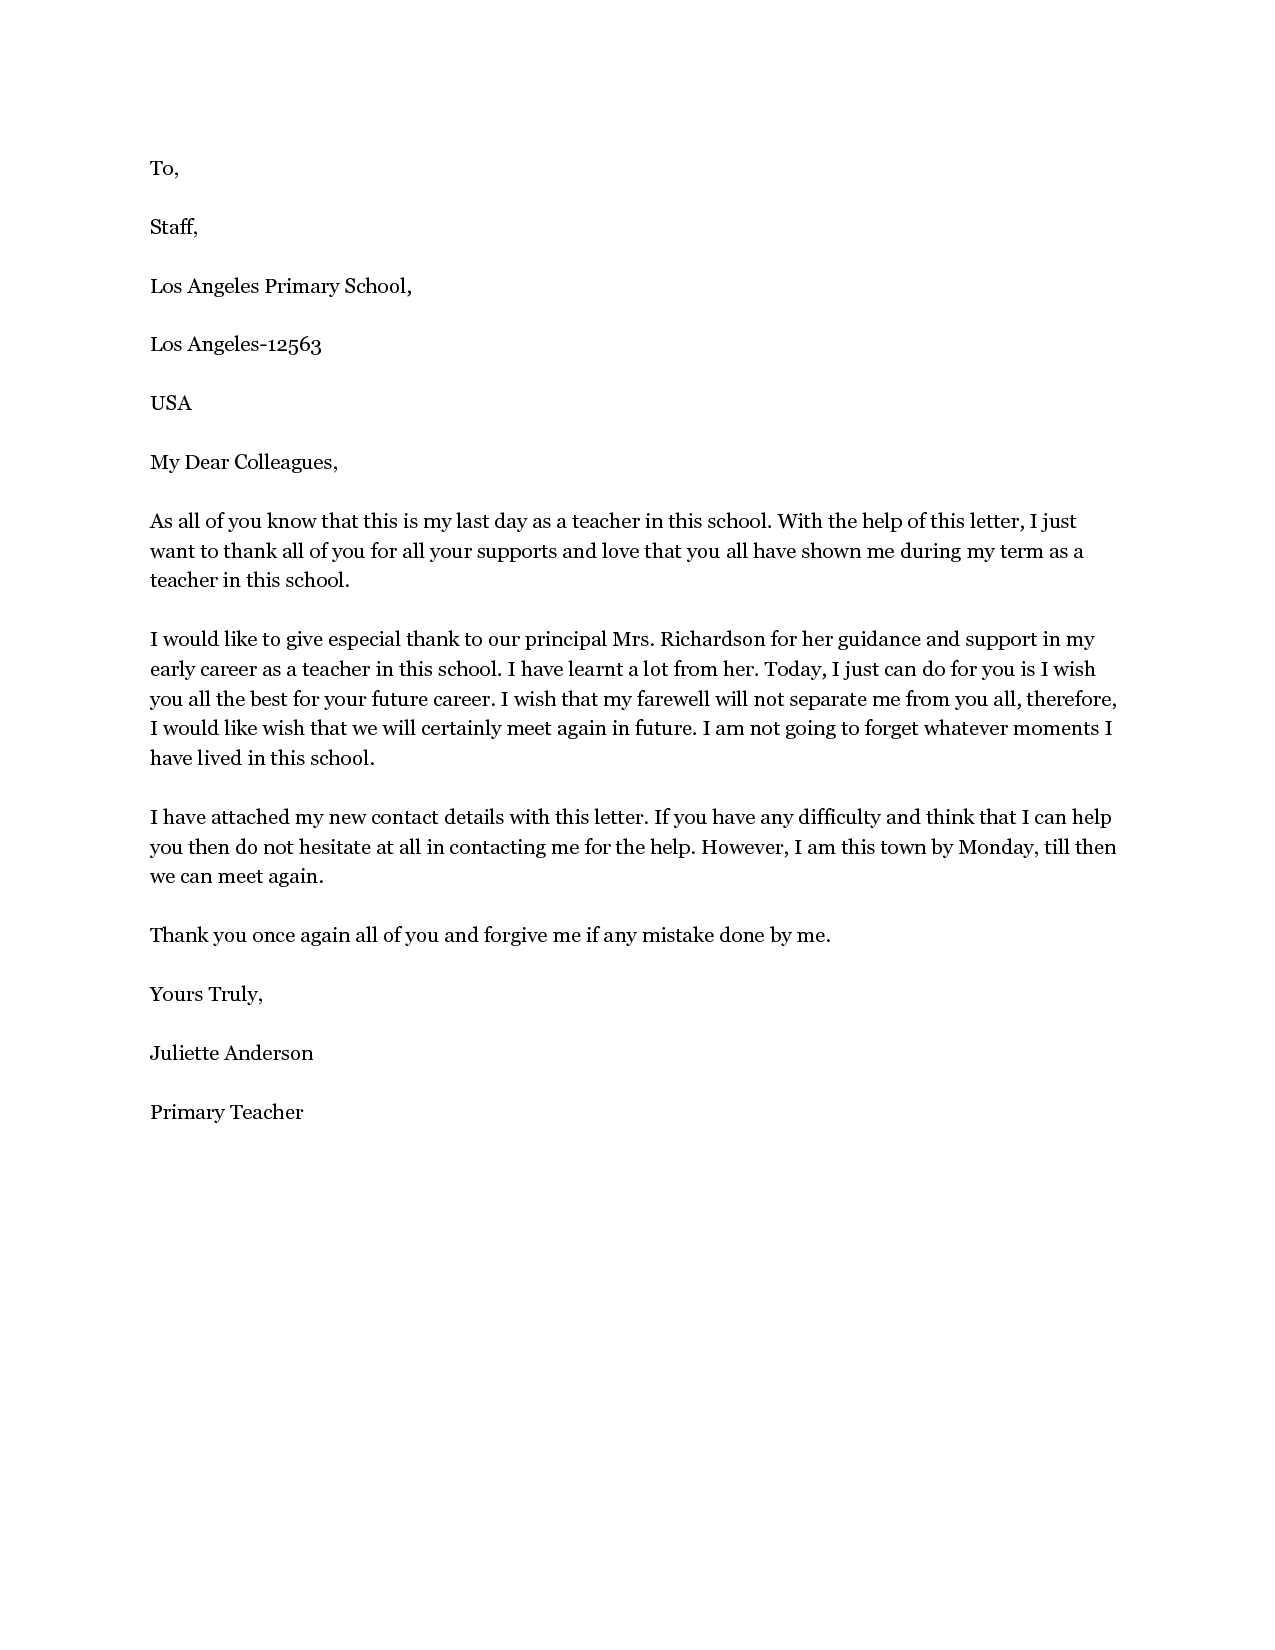 Pin by mel y on work pinterest bid goodbye life skills and teacher goodbye letter to colleagues a farewell letter to colleagues can be used to bid goodbye to all the colleagues which one has grown close to altavistaventures Gallery